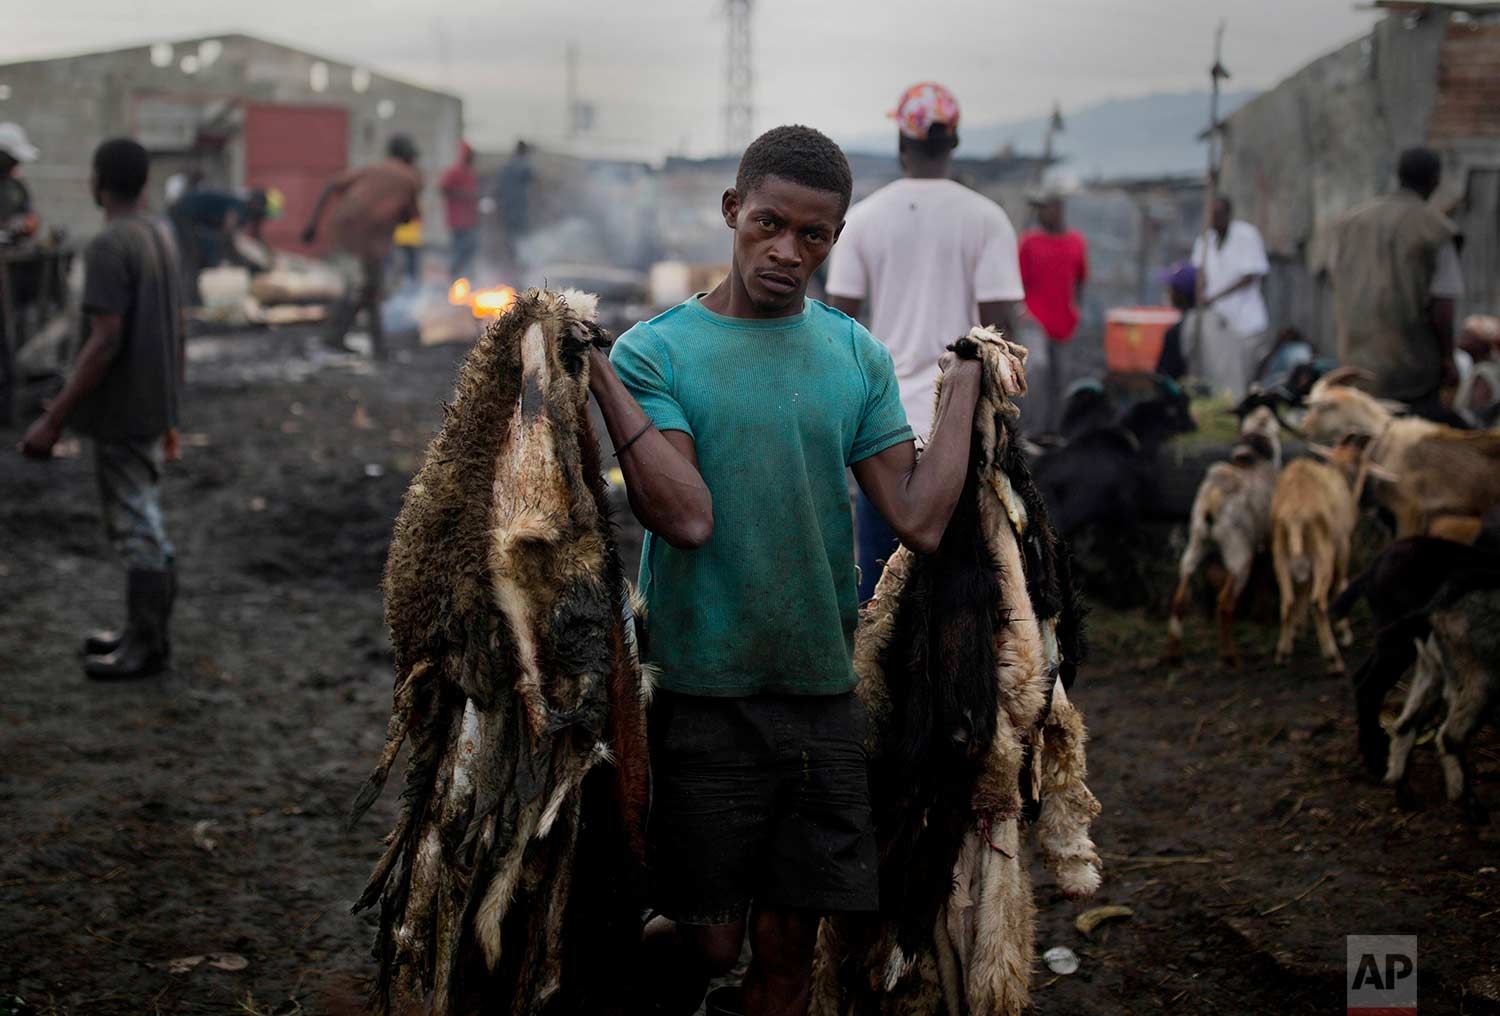 In this Nov. 9, 2017 photo published on Dec. 5, goat skinner Sonson Pierre hauls goat pelts at the La Saline slaughterhouse, in Port-au-Prince, Haiti. The 28-year-old, who has worked at the open-air market for 12 years, is dismayed that a market which provides meat to most of the capital's supermarkets and restaurant, is so unregulated. (AP Photo/Dieu Nalio Chery)